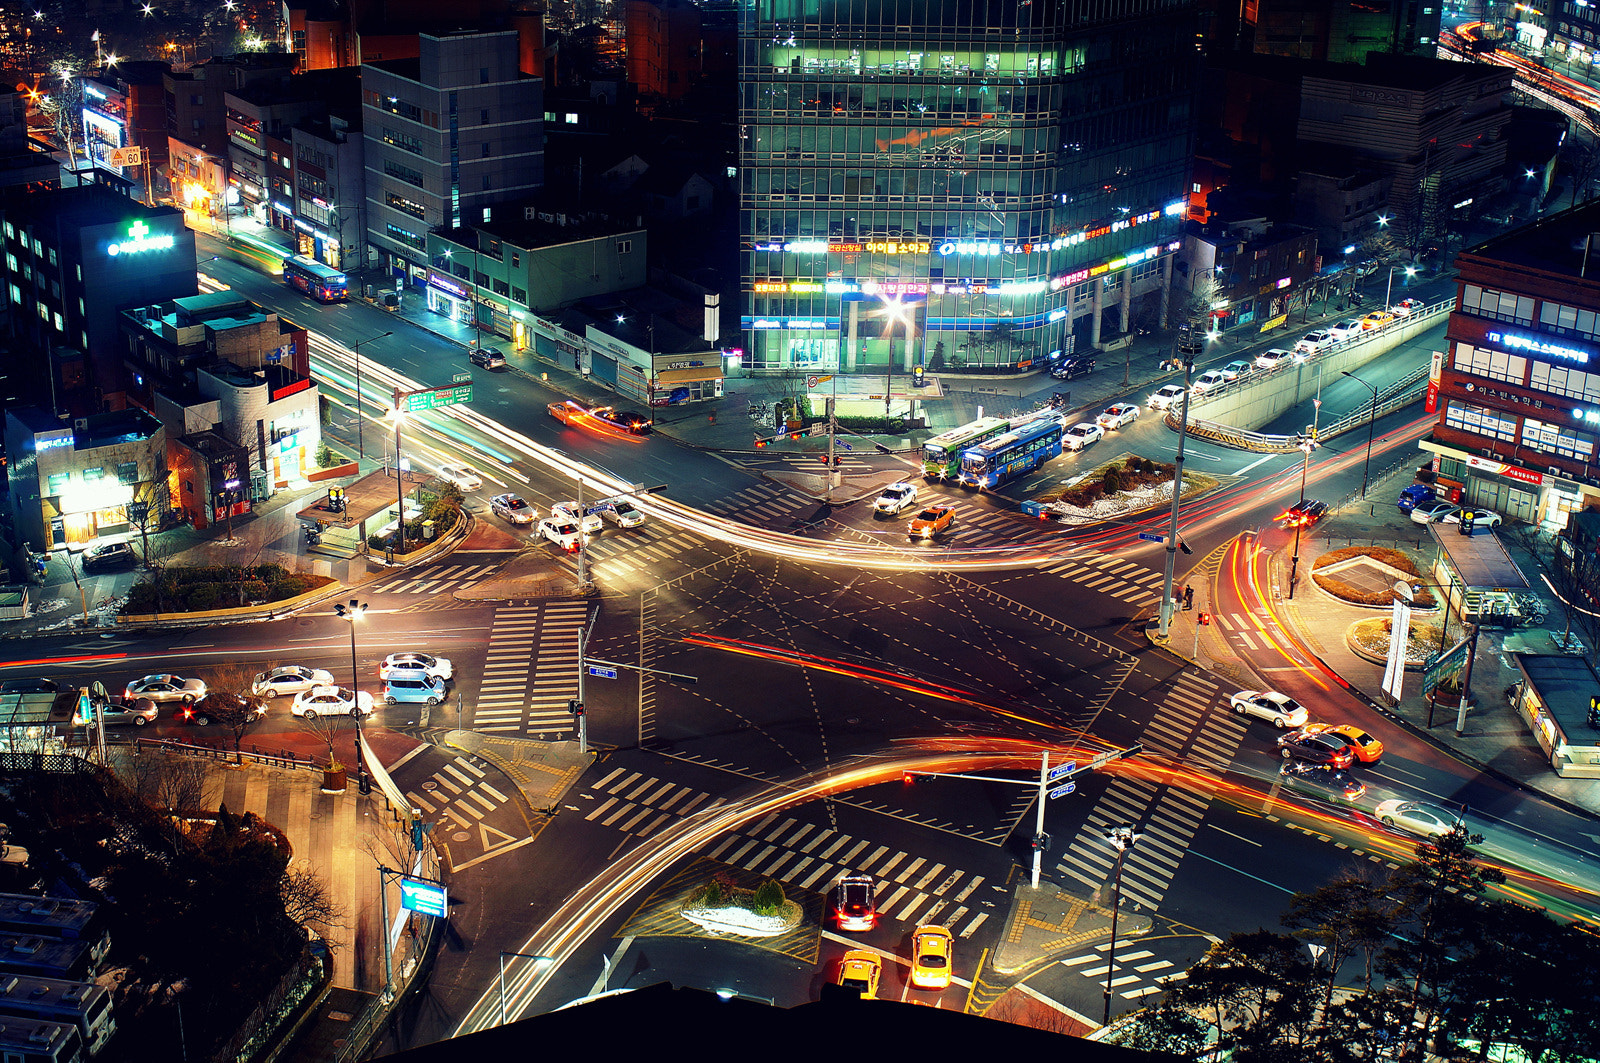 Photograph crossroad by 300won on 500px